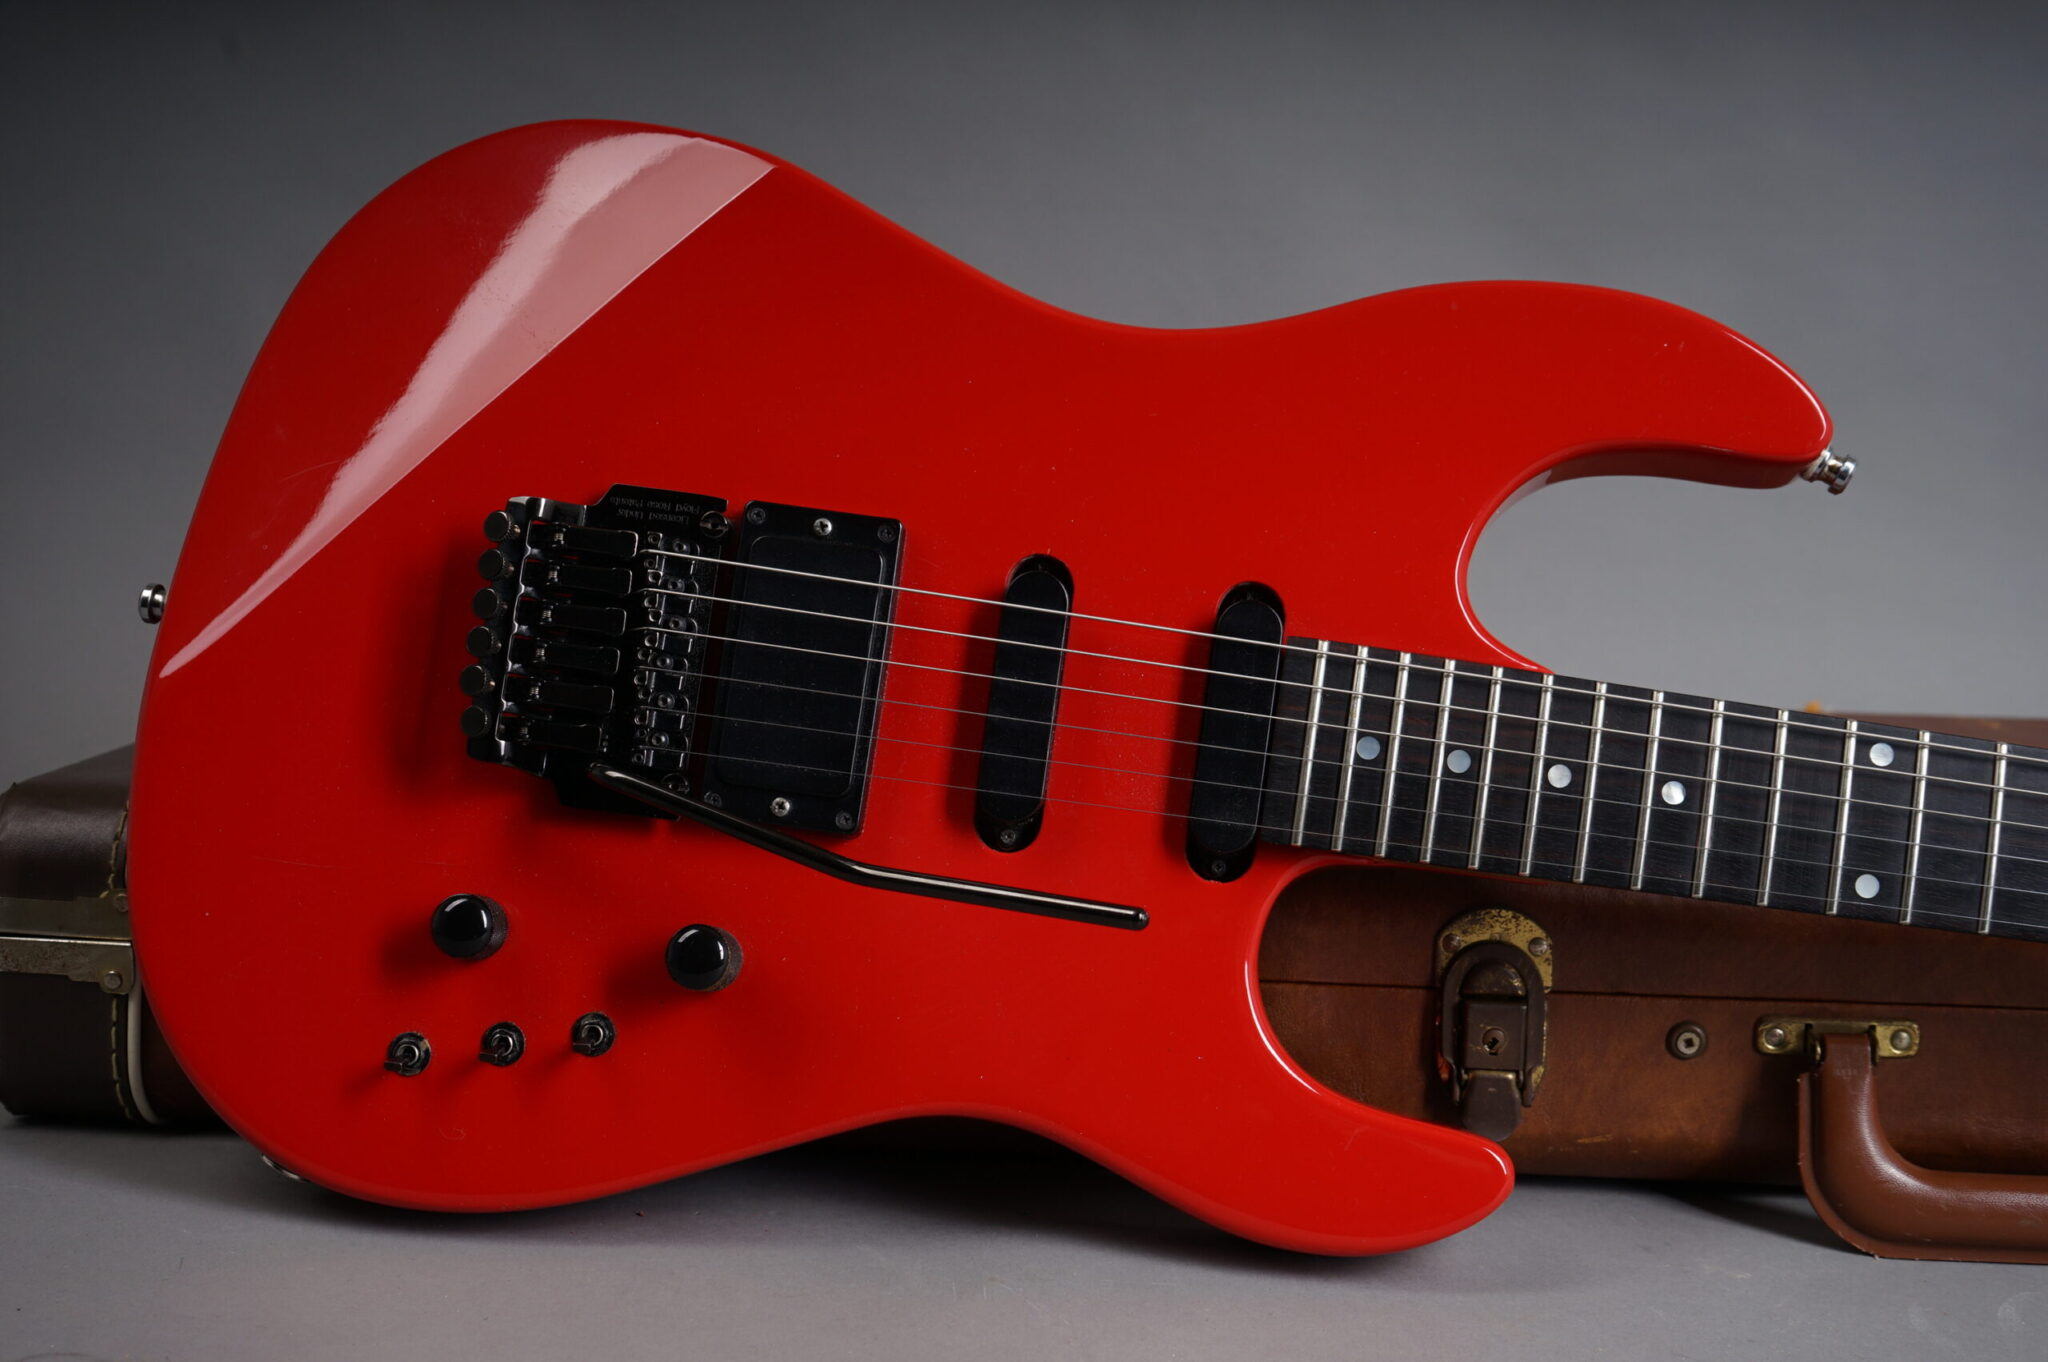 https://guitarpoint.de/app/uploads/products/1987-gibson-wcr-red/1987-Gibson-WCR-Red-82957666-8-scaled-2048x1362.jpg